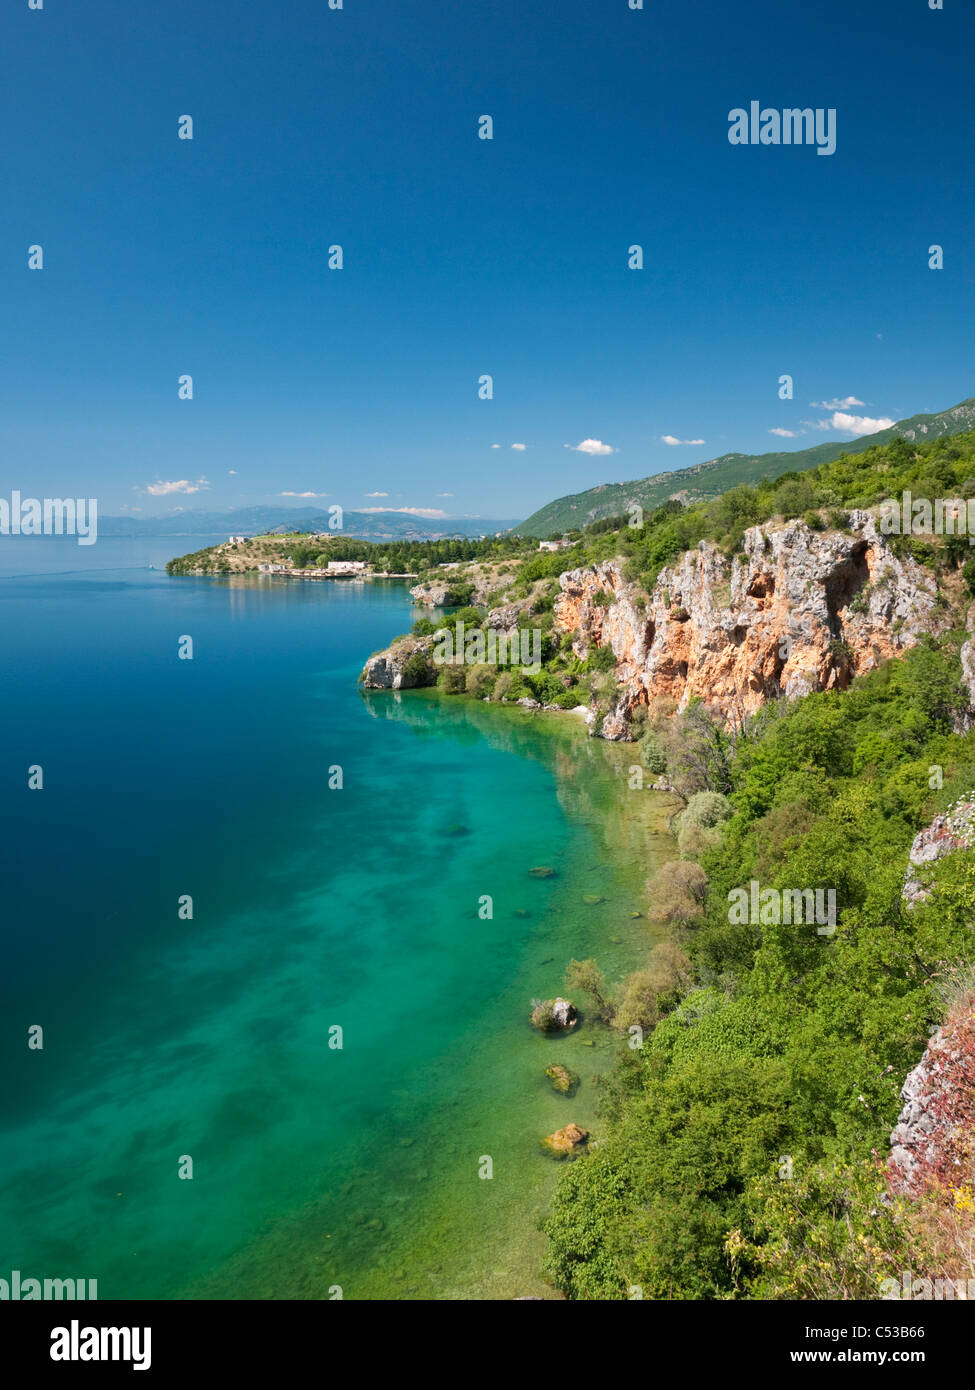 Lake Ohrid from near the village of Trpejca, in Galicica National Park, Macedonia - Stock Image